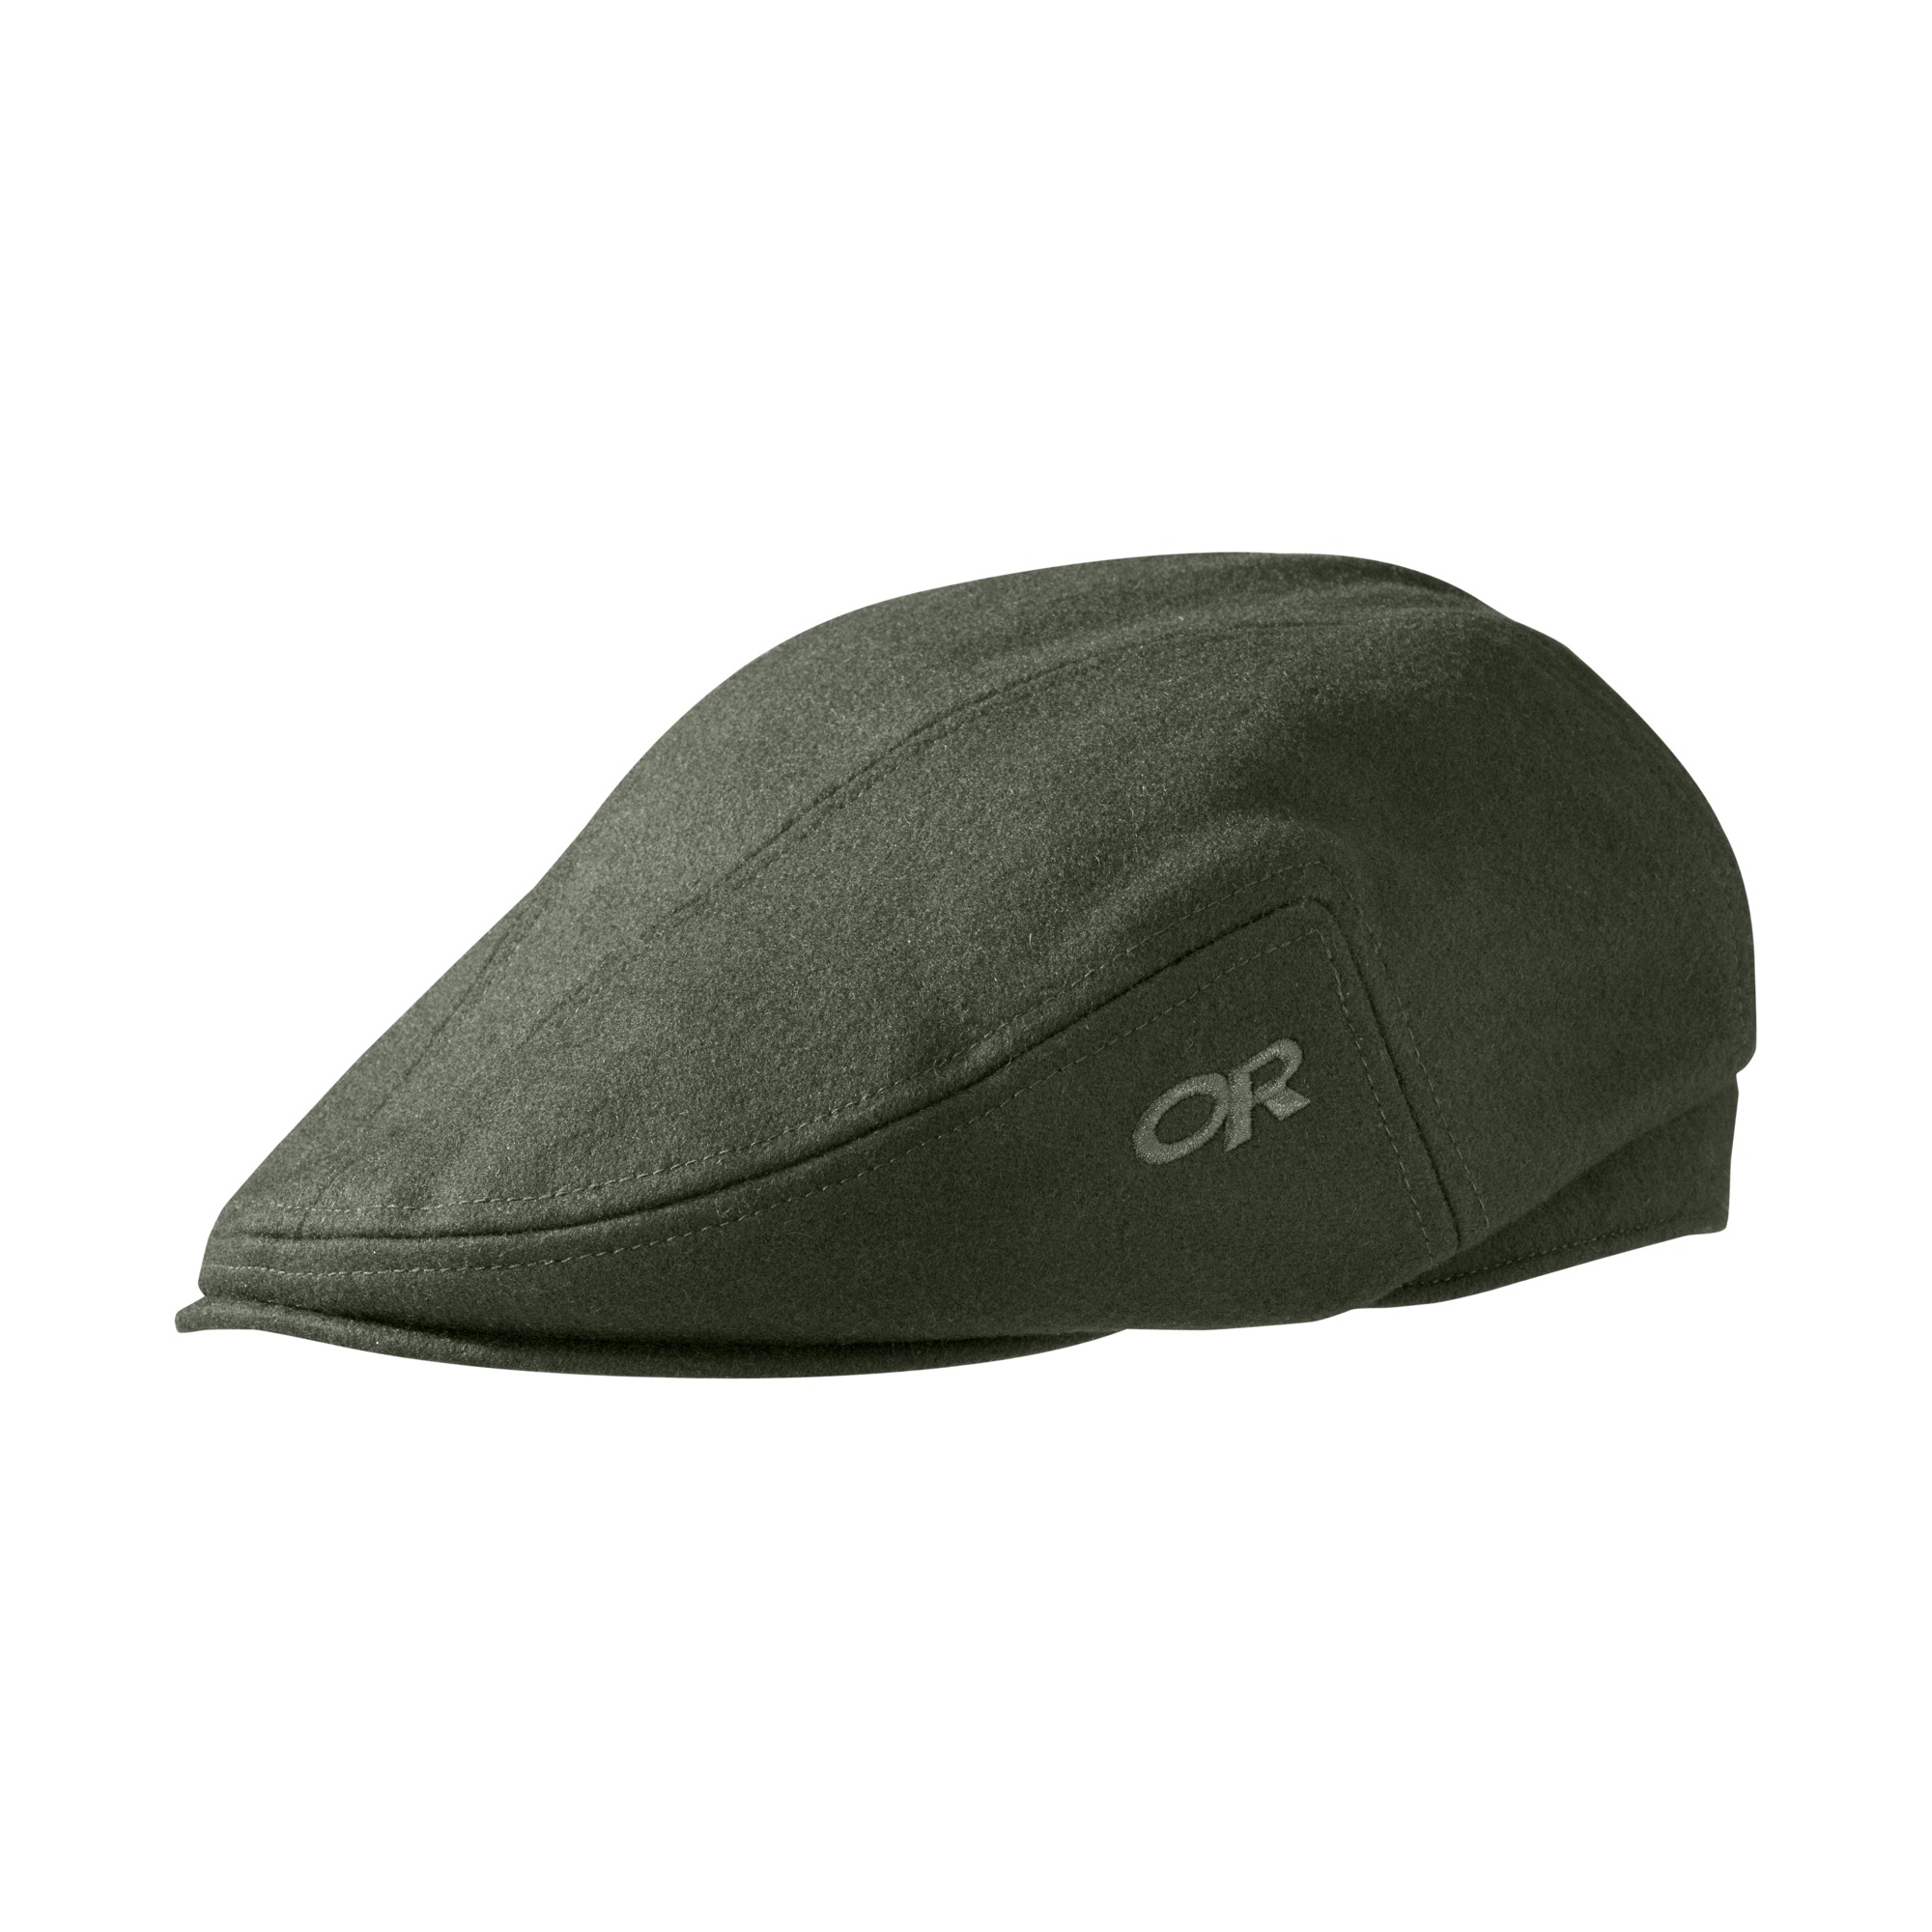 Turnpoint Driver Cap™ - evergreen  505702c4255